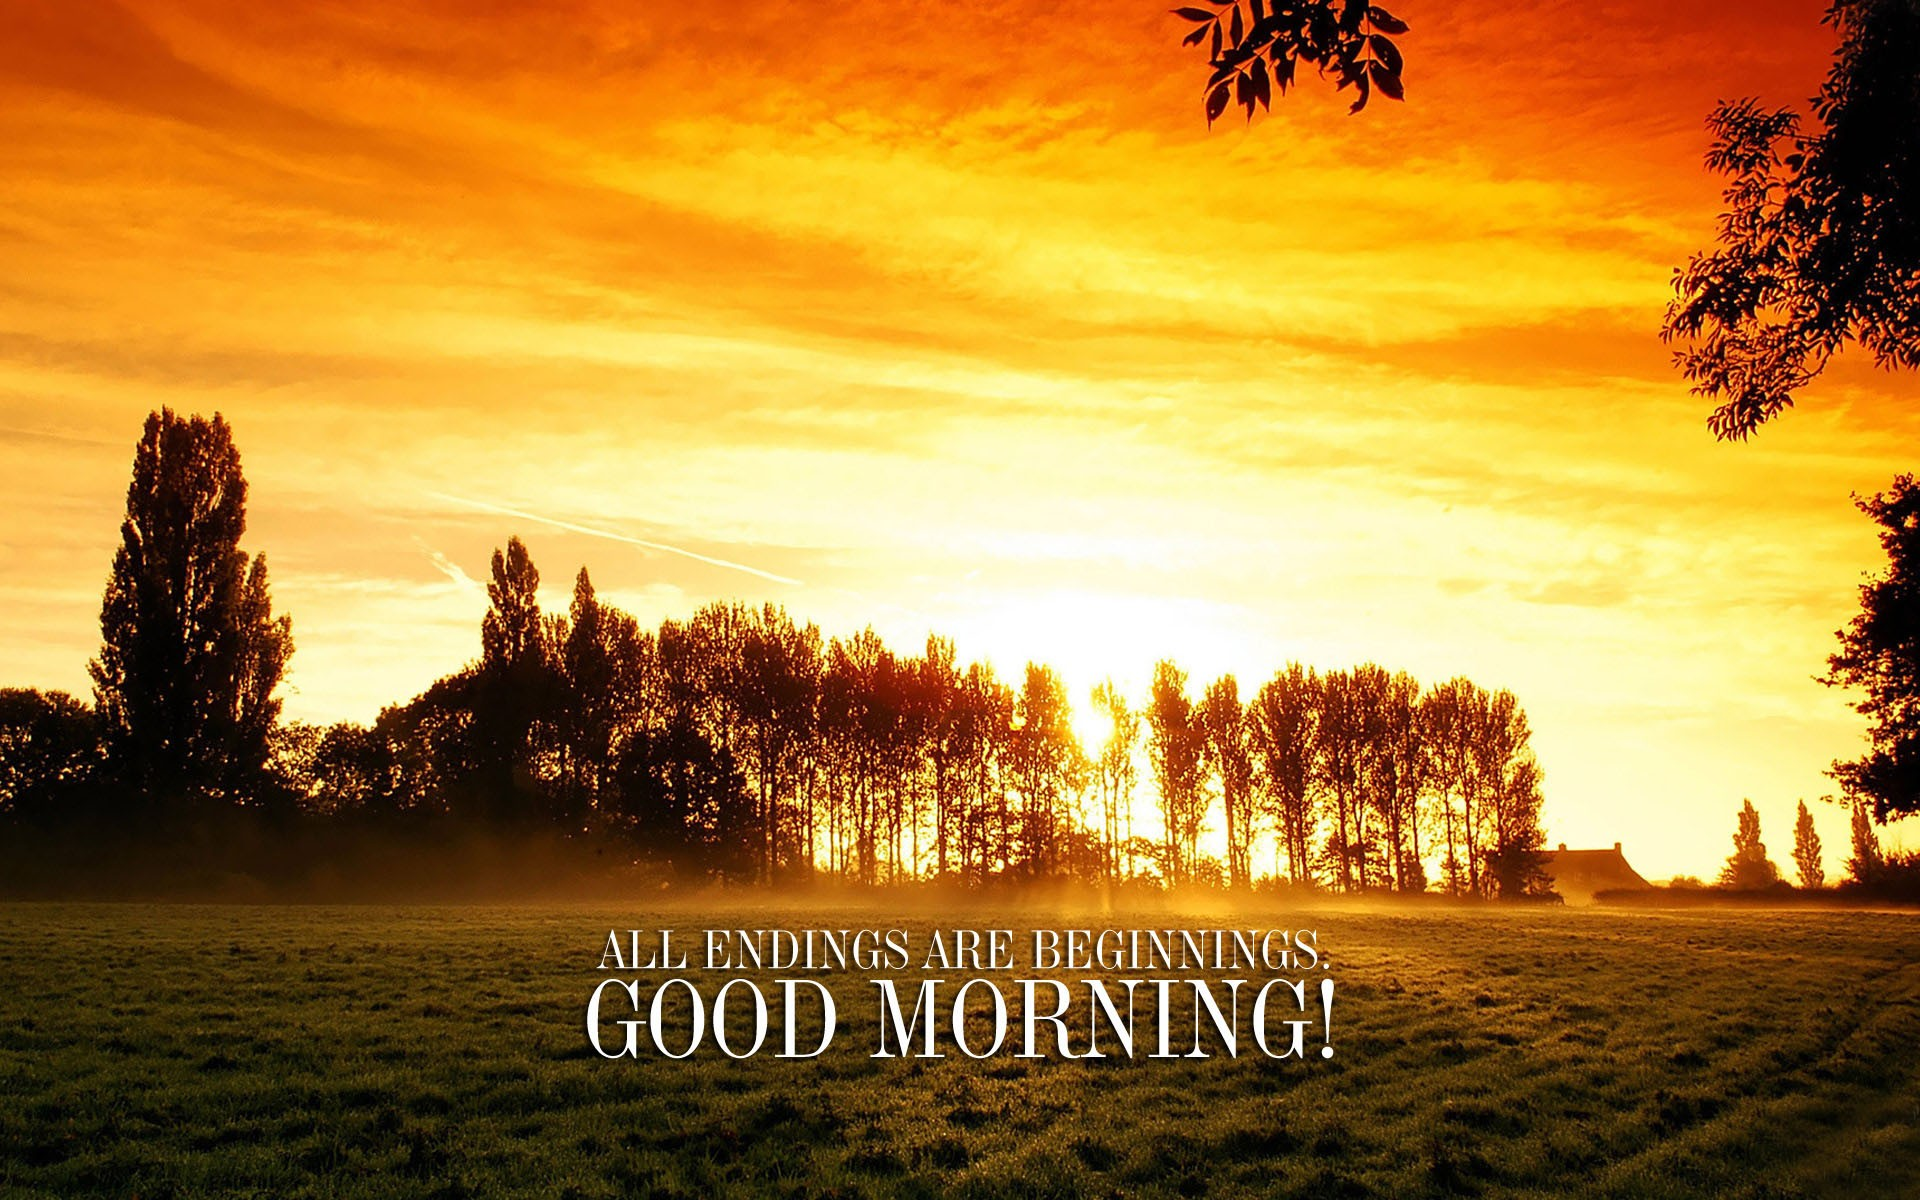 Morning Wishes - Year Ending Good Morning Quotes , HD Wallpaper & Backgrounds